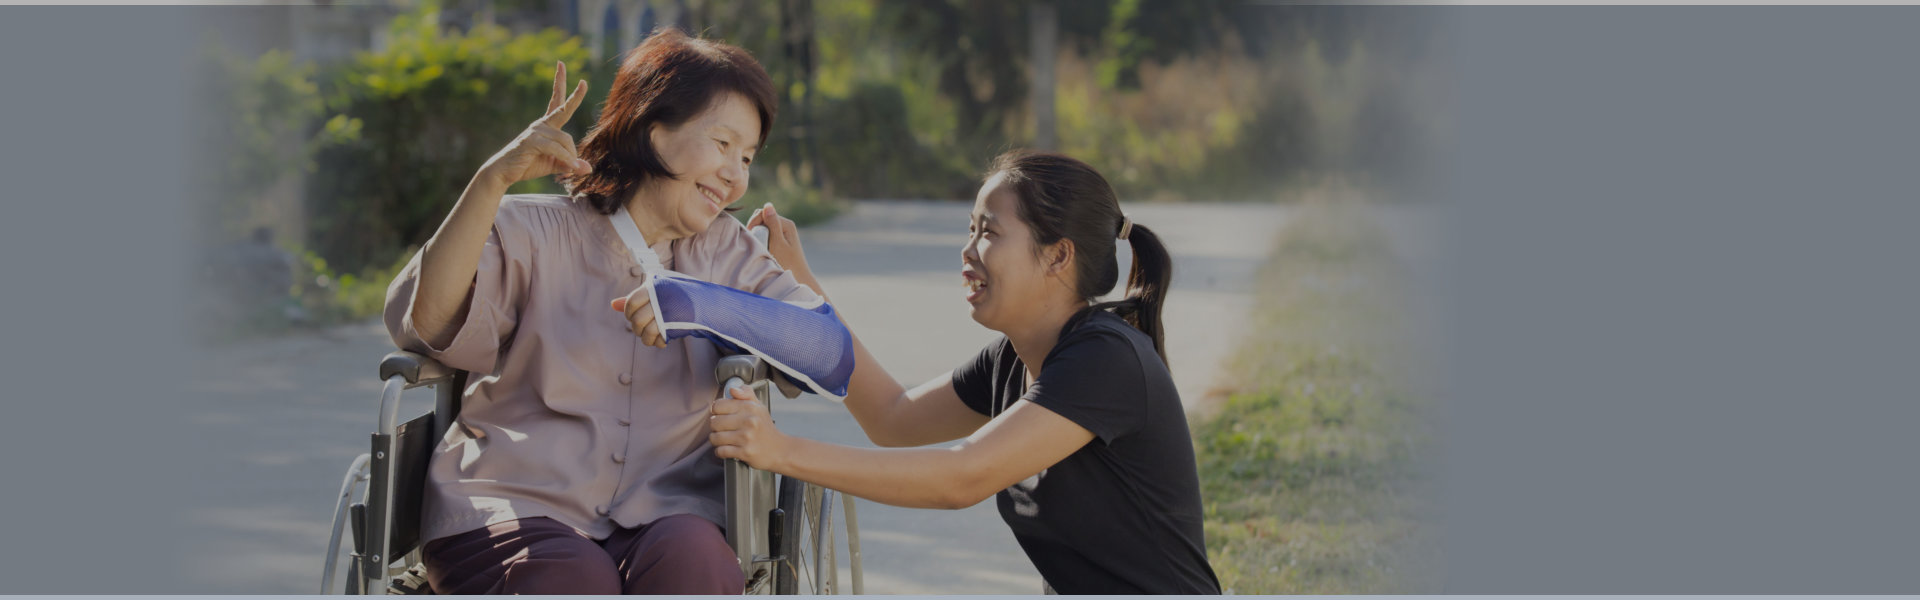 disabled old woman with the young woman